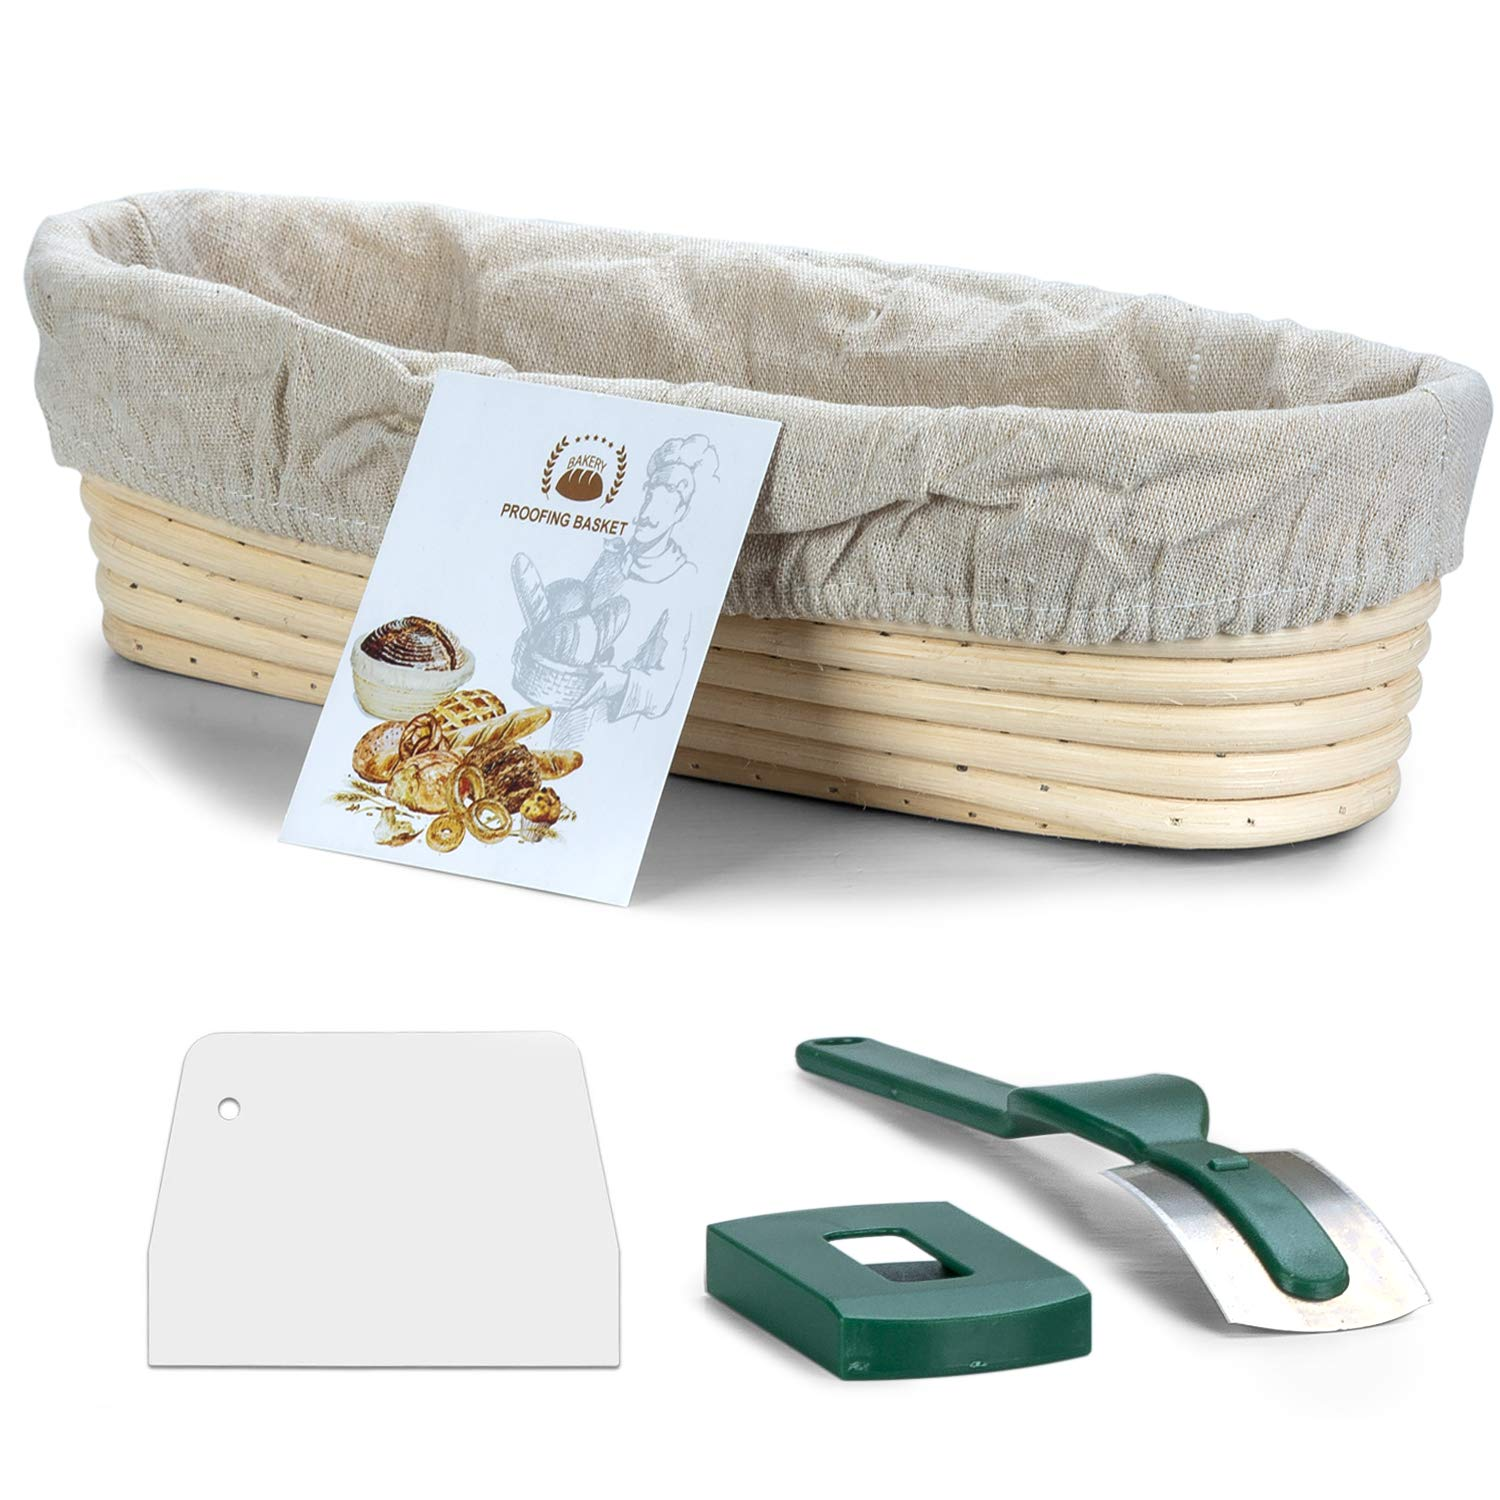 Oval Proofing Basket 13.8 Inch,WERTIOO Banneton Bread Proofing Basket + Lame + Linen Liner Cloth for Professional & Home Bakers